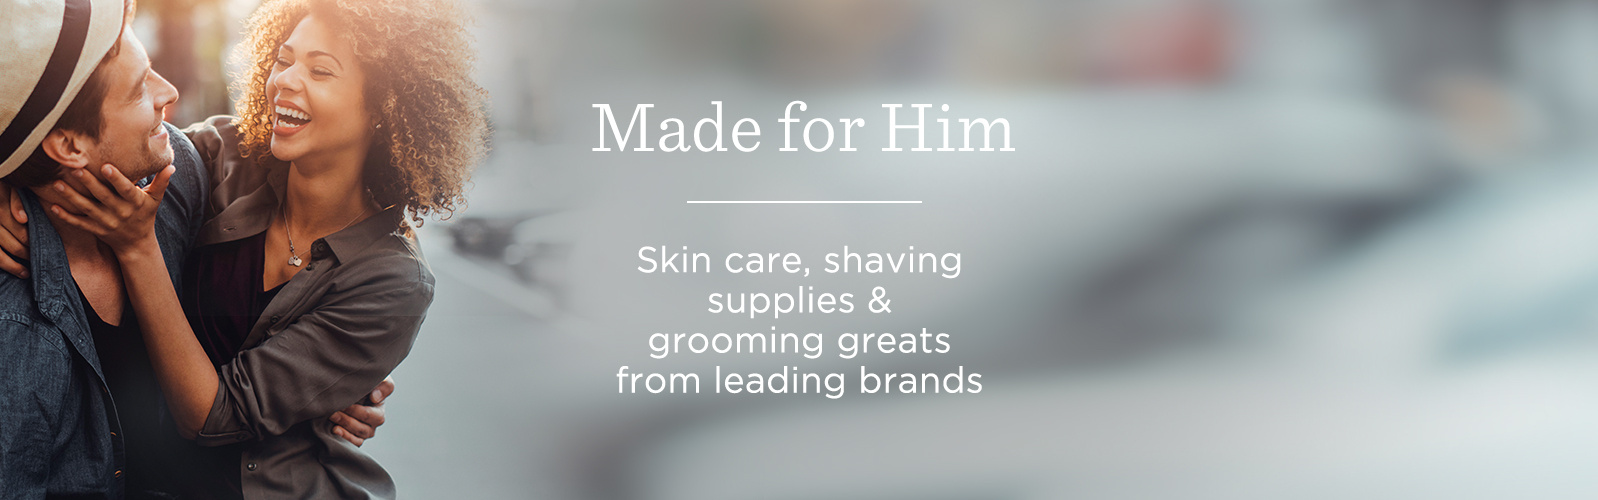 Made for Him.  Skin care, shaving supplies & grooming greats from leading brands